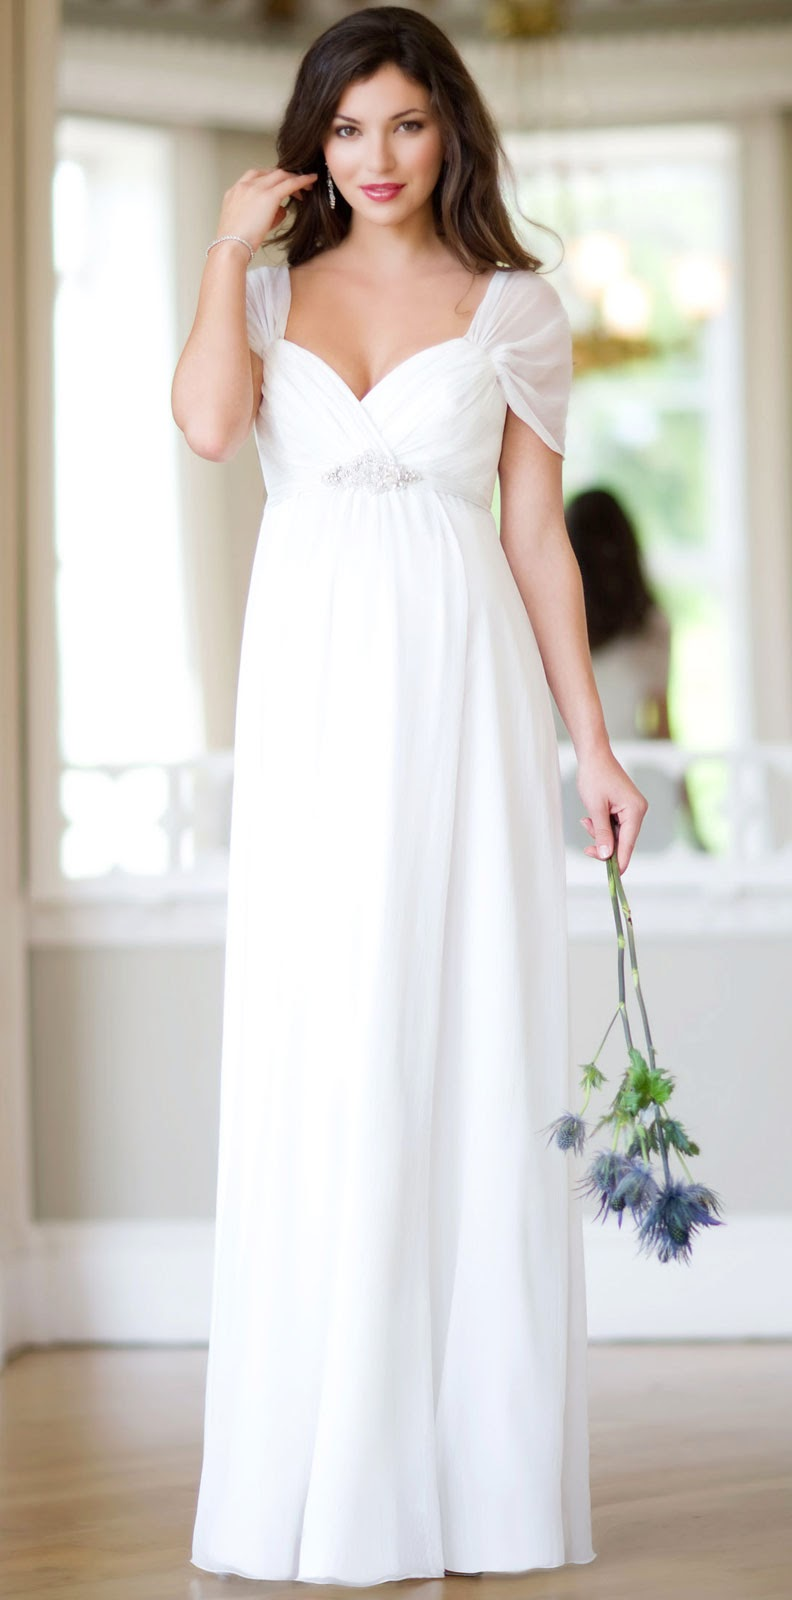 Affordable Bridesmaid Dresses Under 100